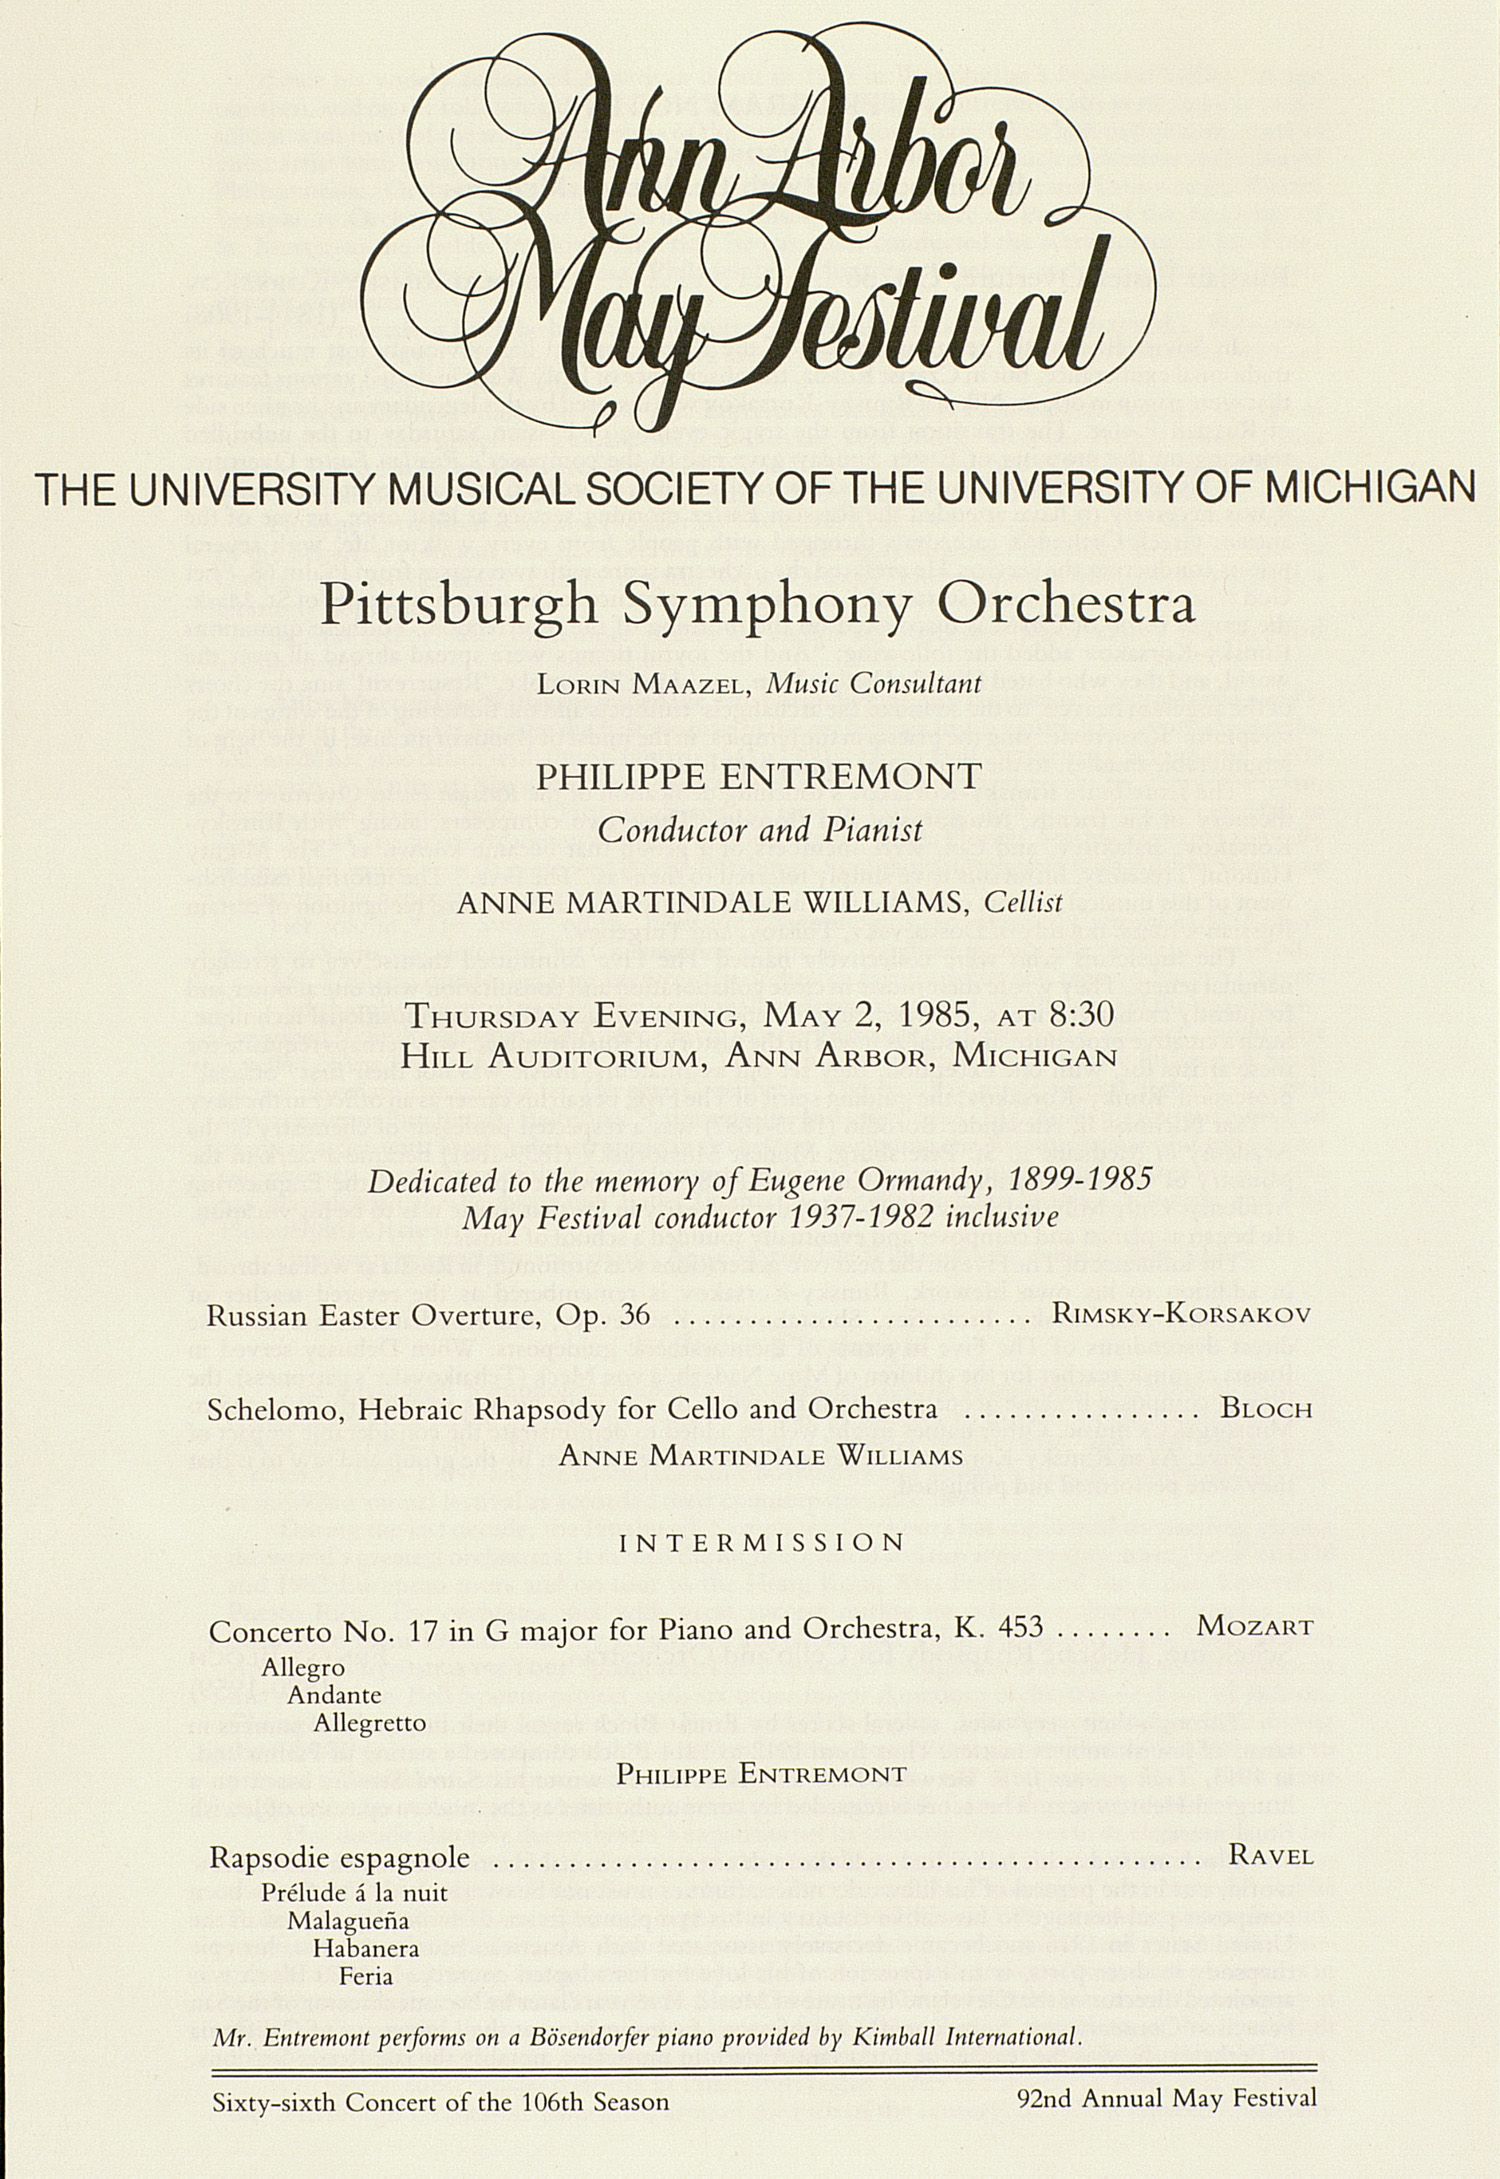 UMS Concert Program, May 2, 1985: Ann Arbor May Festival -- Pittsburgh Symphony Orchestra image